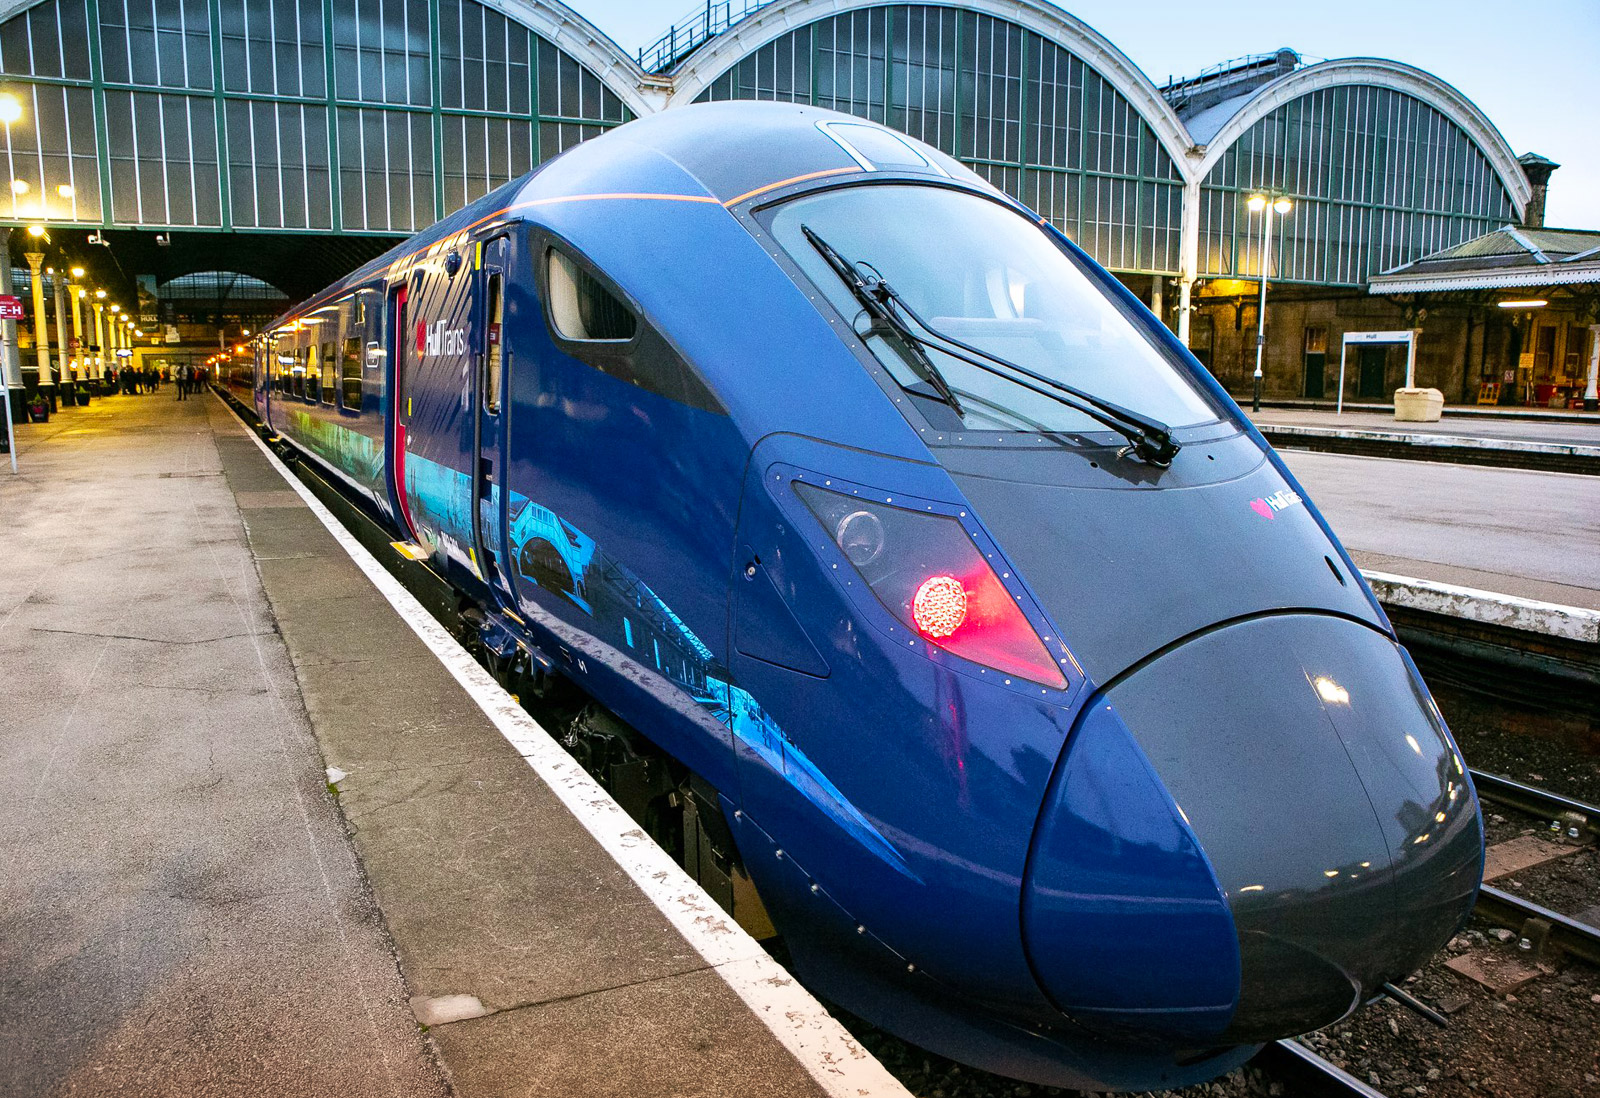 UK] Hull Trains: The first Paragon bi-mode enters service